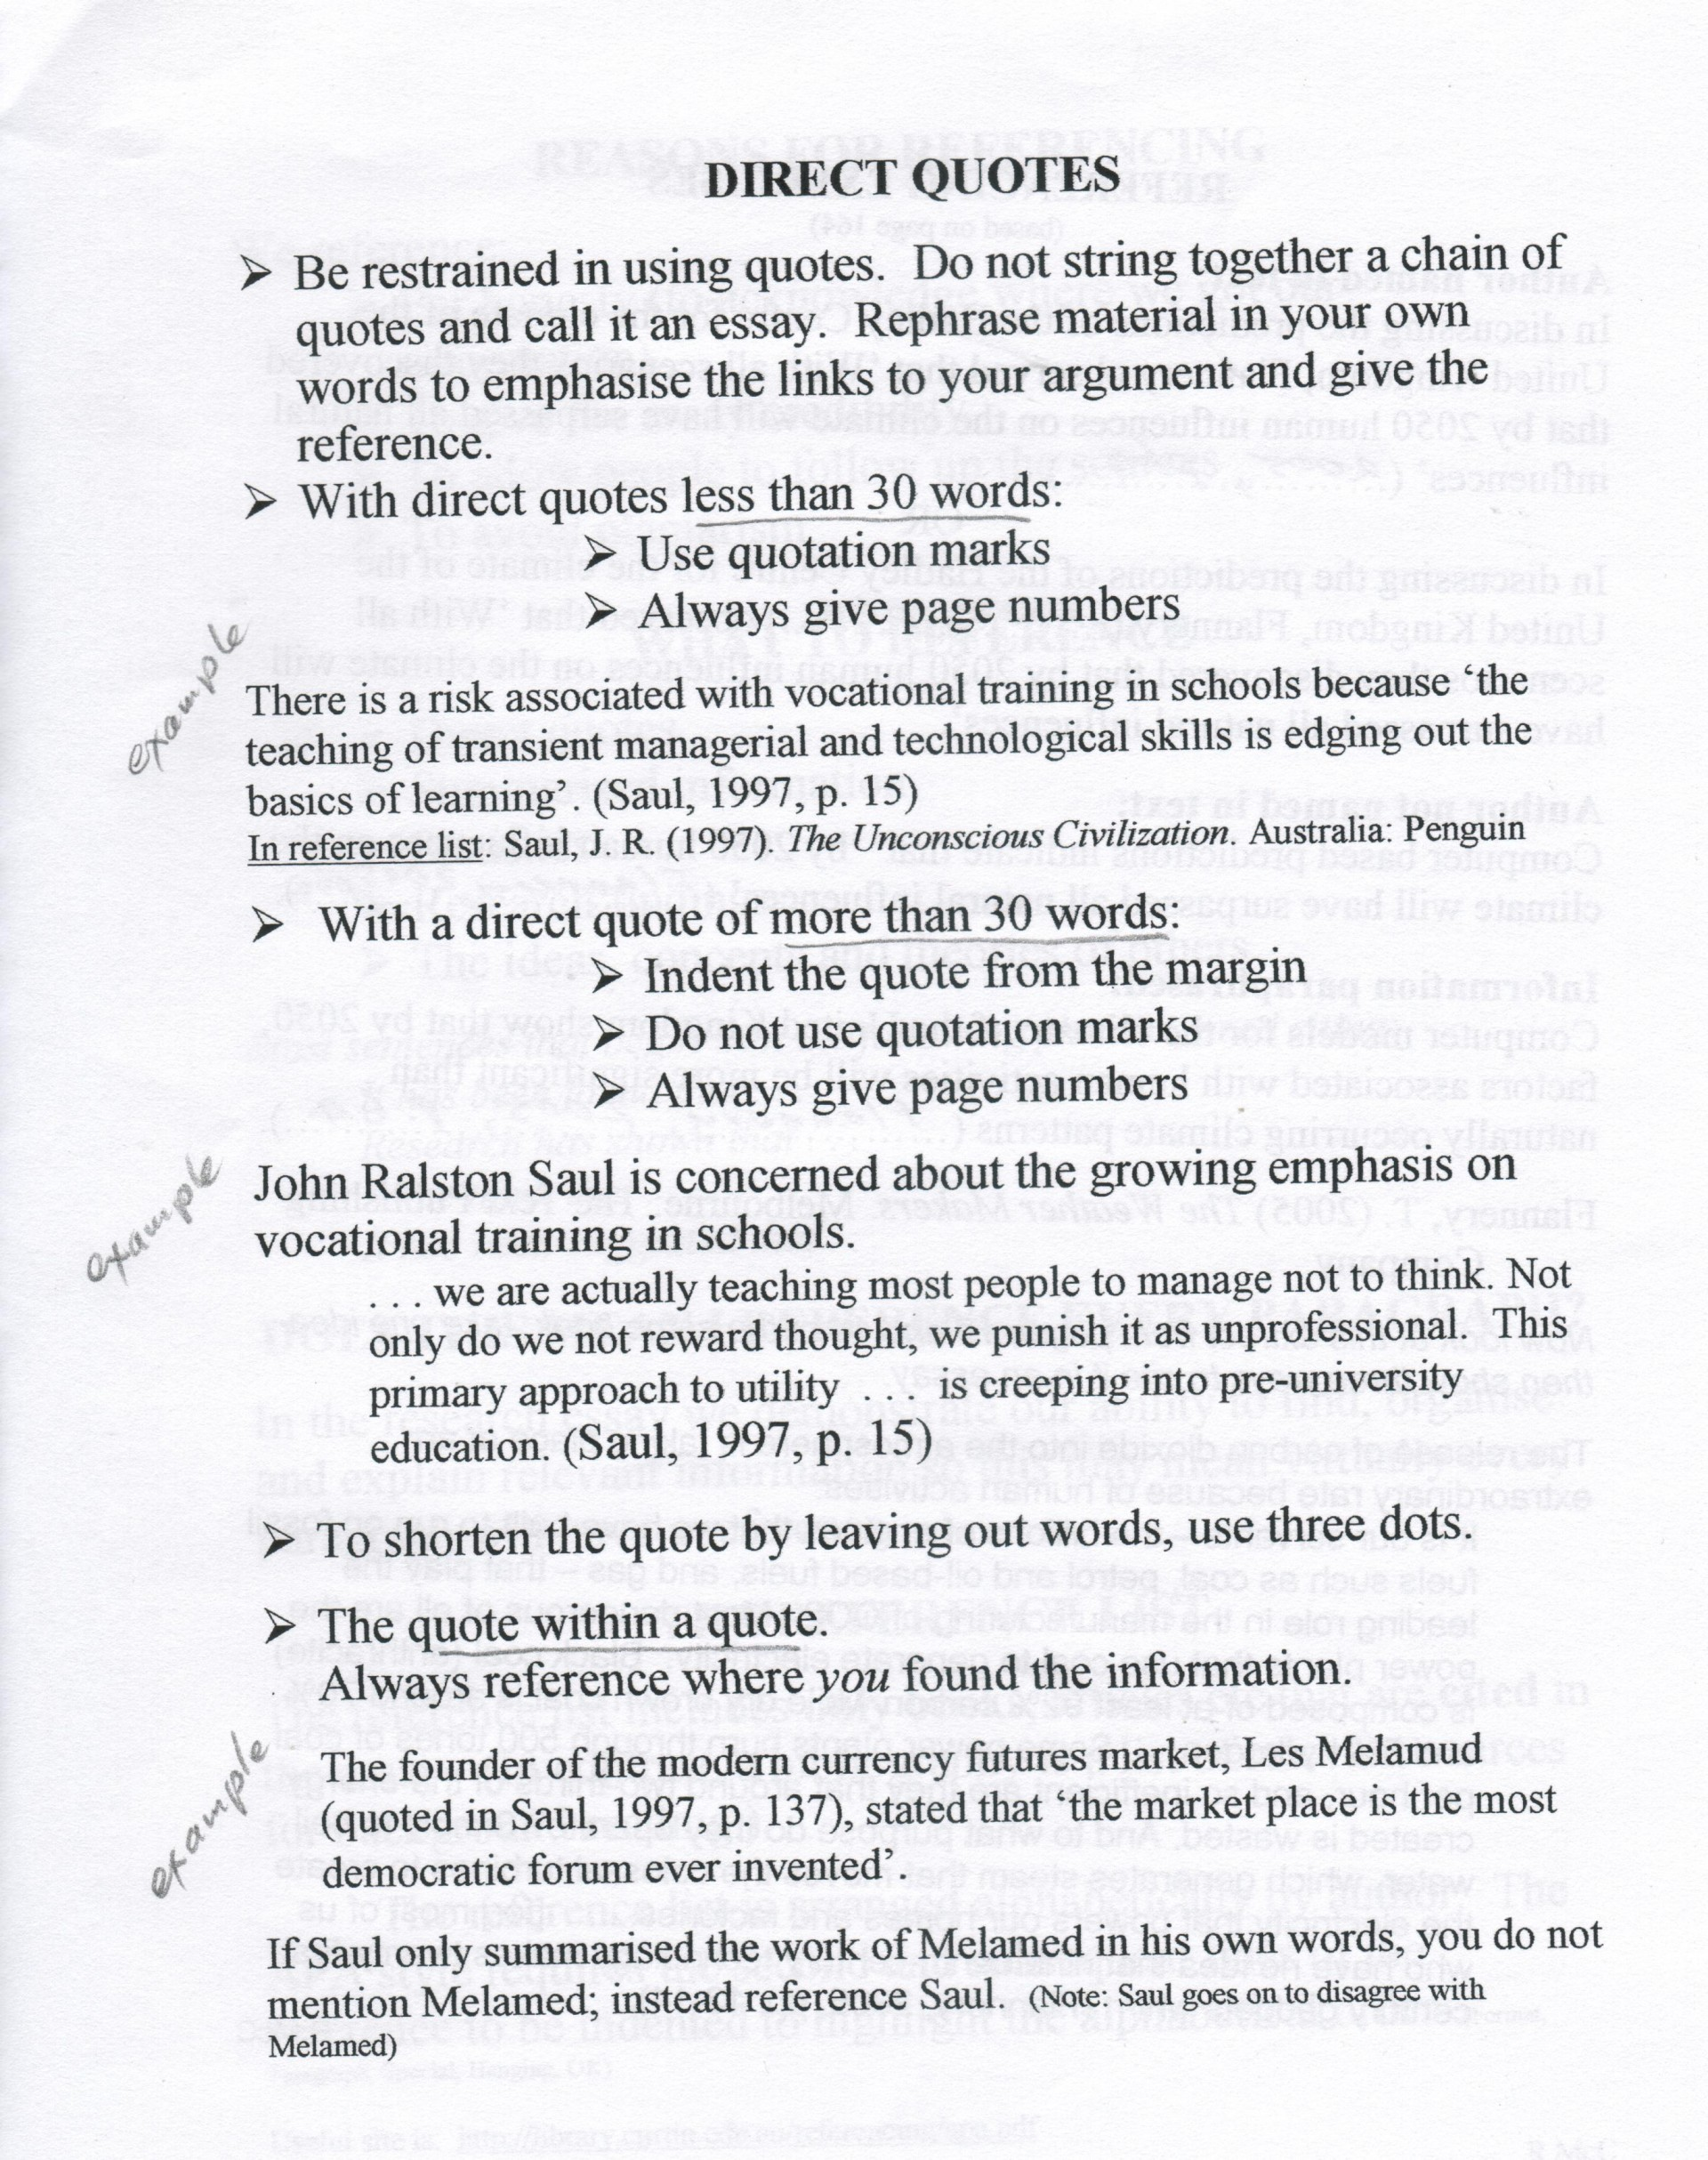 016 Direct Quotes How To Write An Essay With Imposing In Mla Integrate Quotations Writing Essays-apa Or Include A Quote Apa 1920